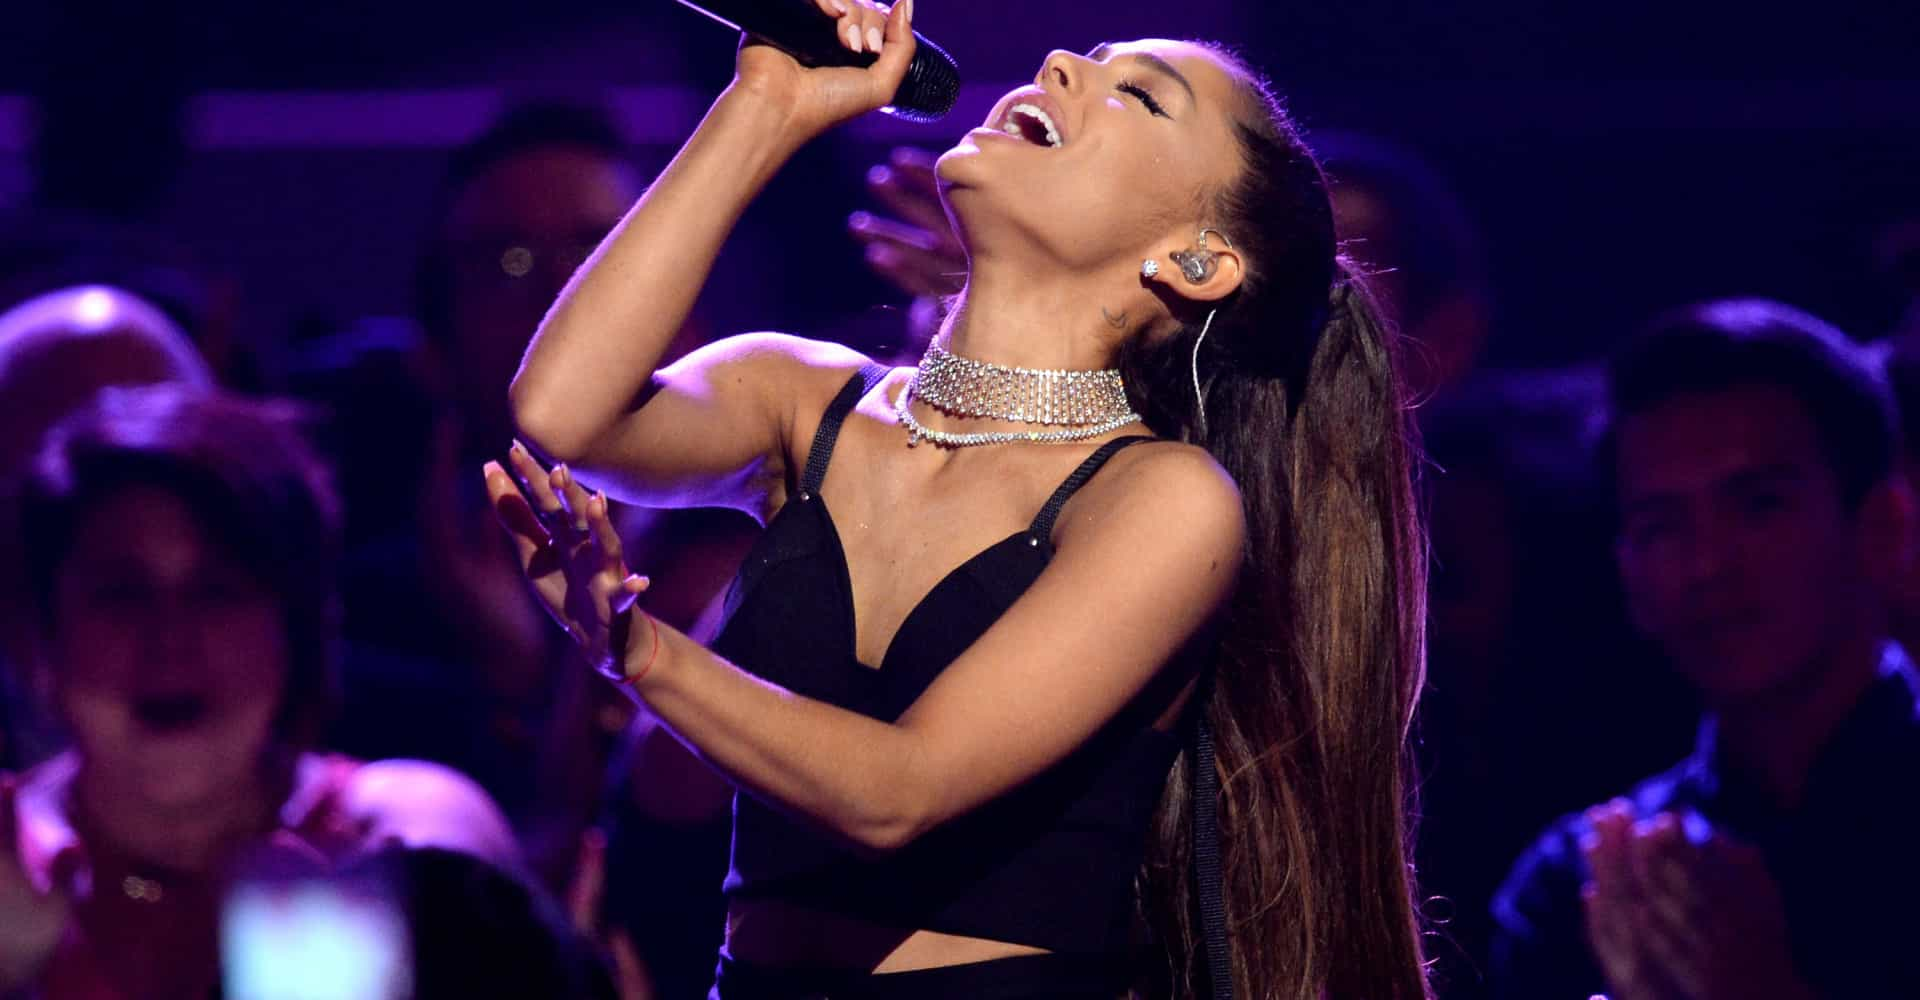 Why did Ariana Grande stop her concert mid-song? The reason is hilarious